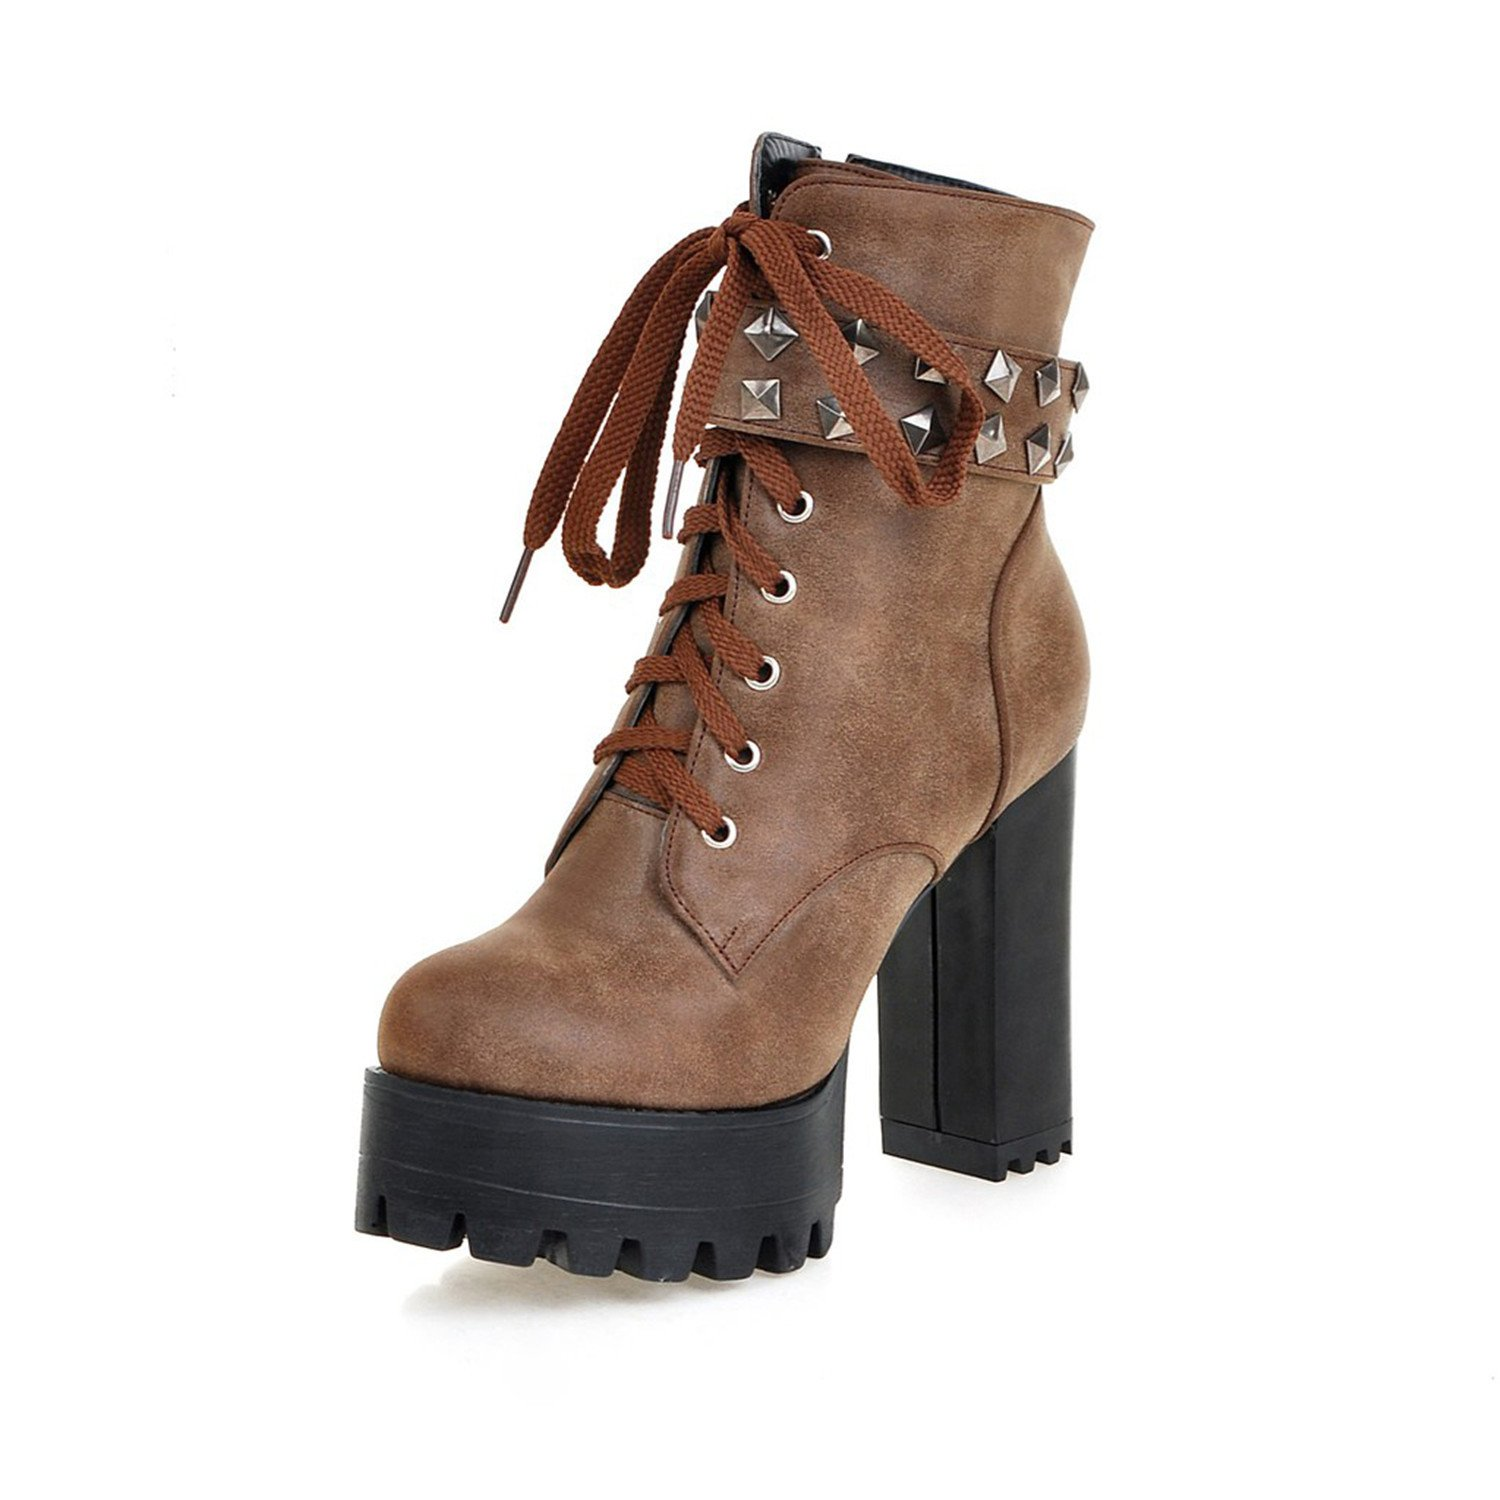 Odetina Women's Sexy Lace-up Zipper Buckle Strap Chunky High Heel Platform Mid Calf Punk Boots with Rivet Stud B07BKV5NFS 11.5 (B)M US|Brown&x-7